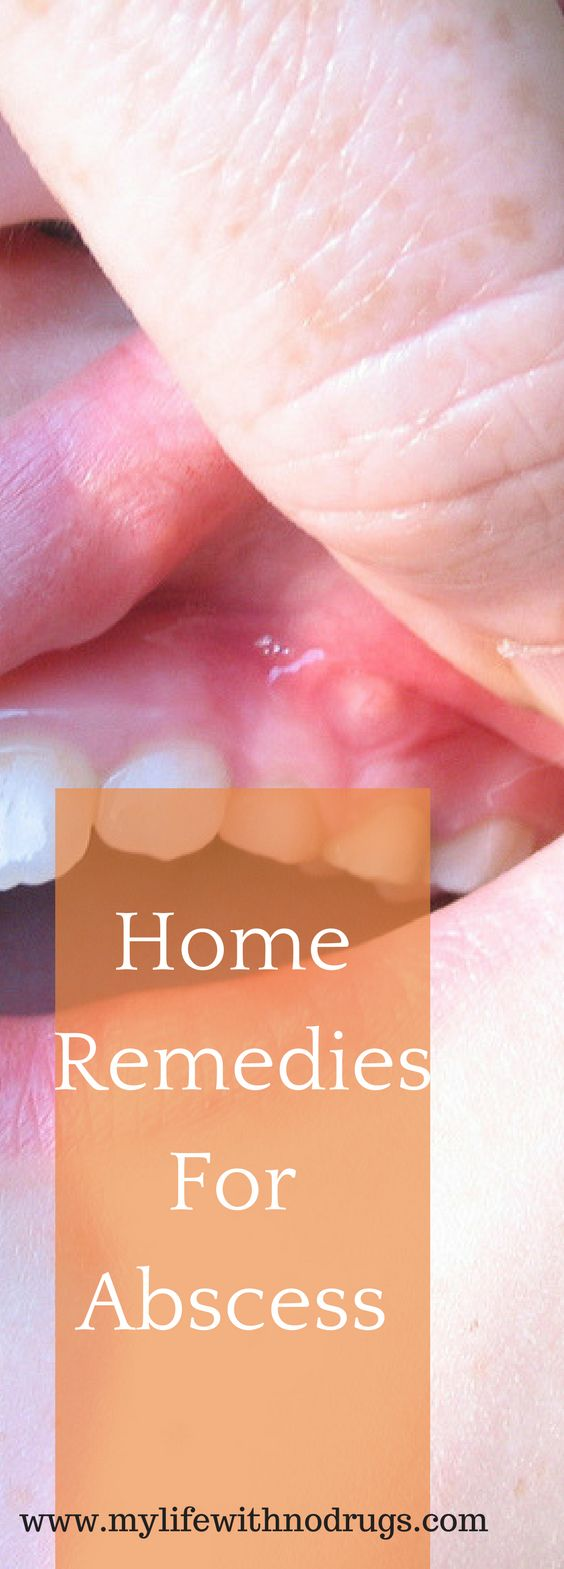 #HomeRemedies For #Abscess with #herbs are effective and safe alternative, without the side effects of antibiotics.